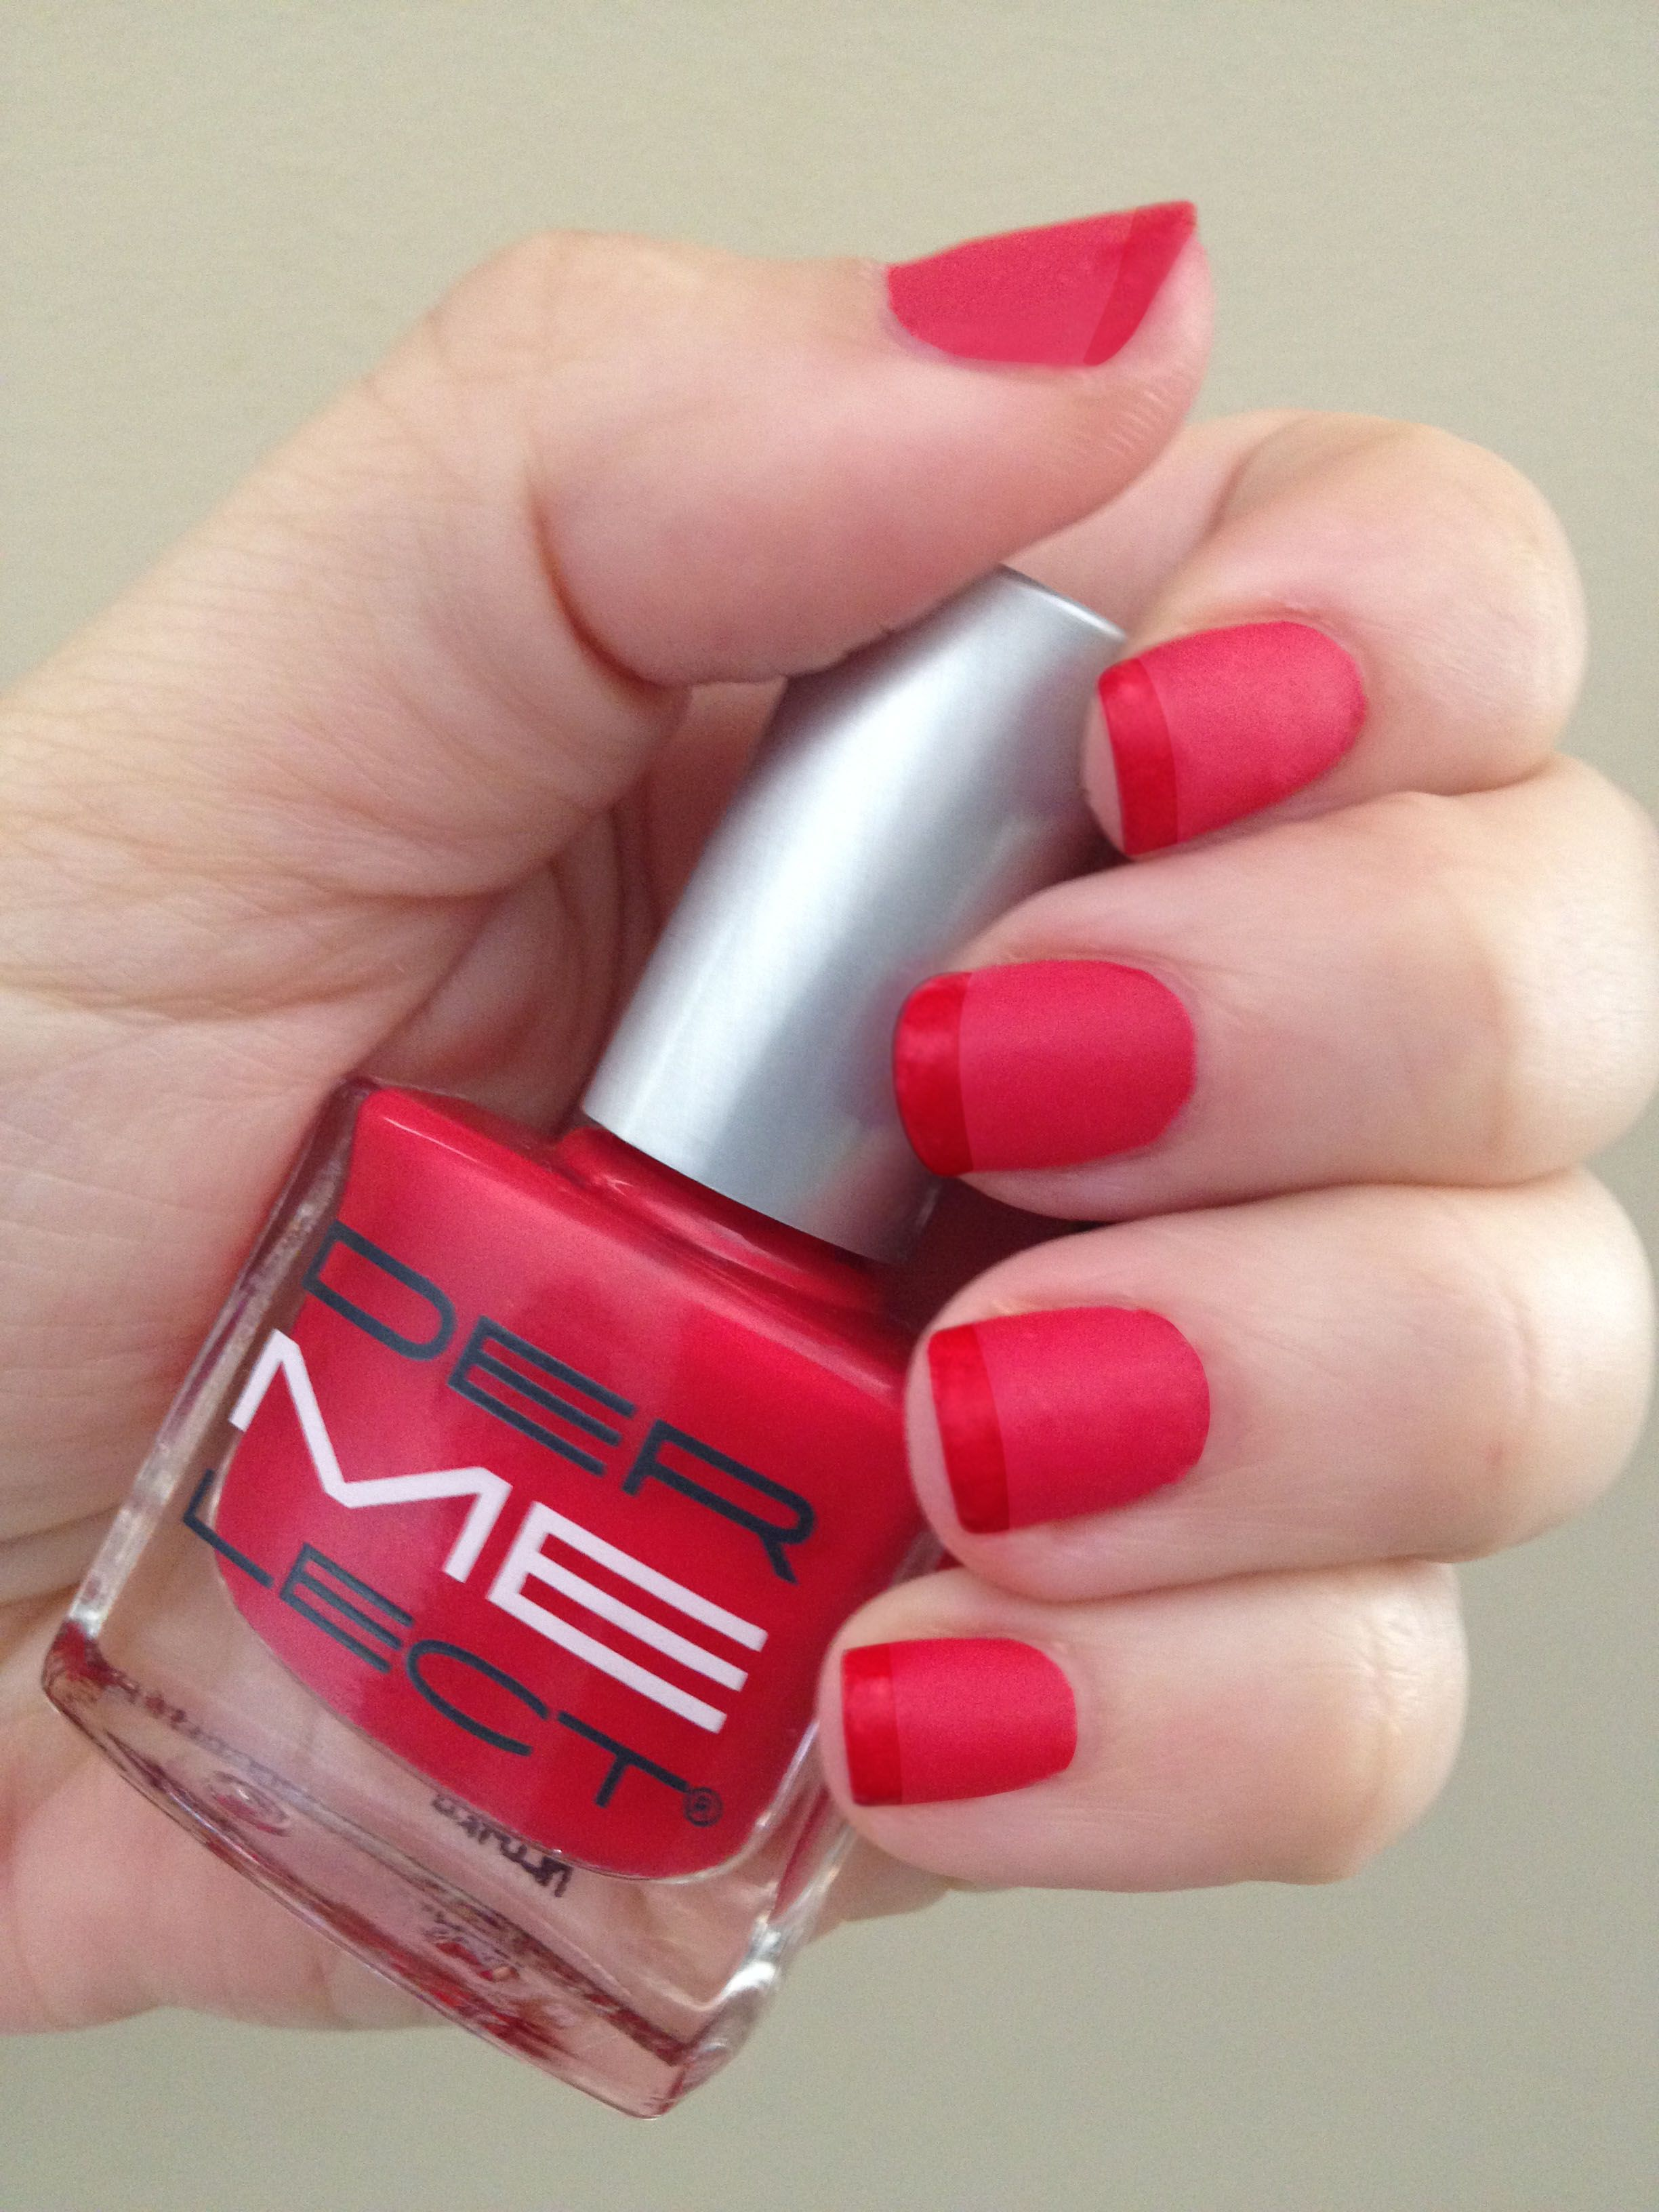 ME\' Peptide-Infused Nail Lacquers (Over 60 Shades!) | Nails ...